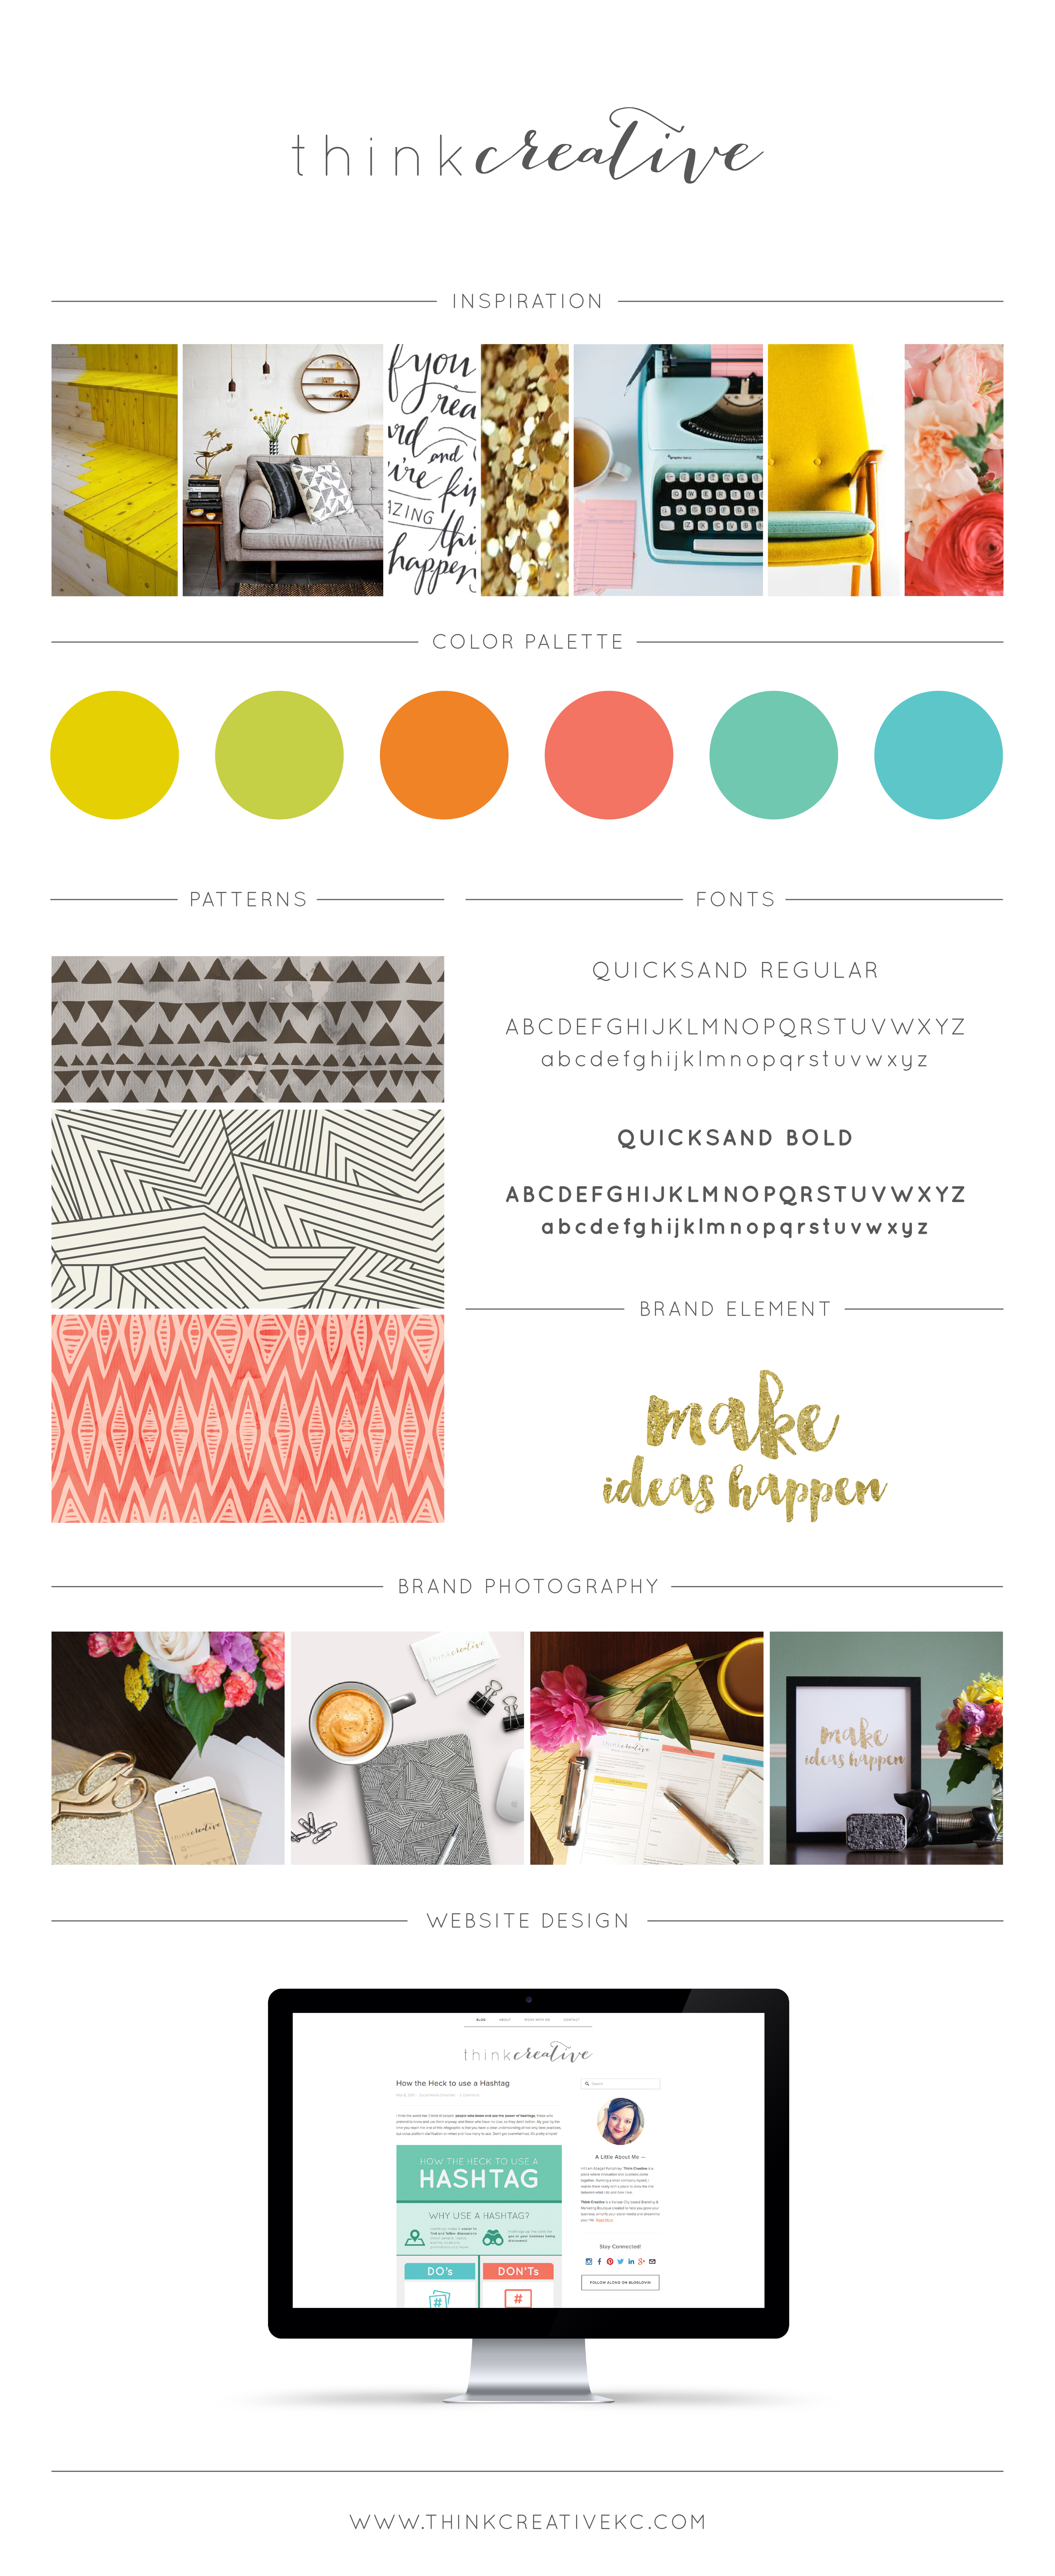 Creating a Style Guide for Your Business